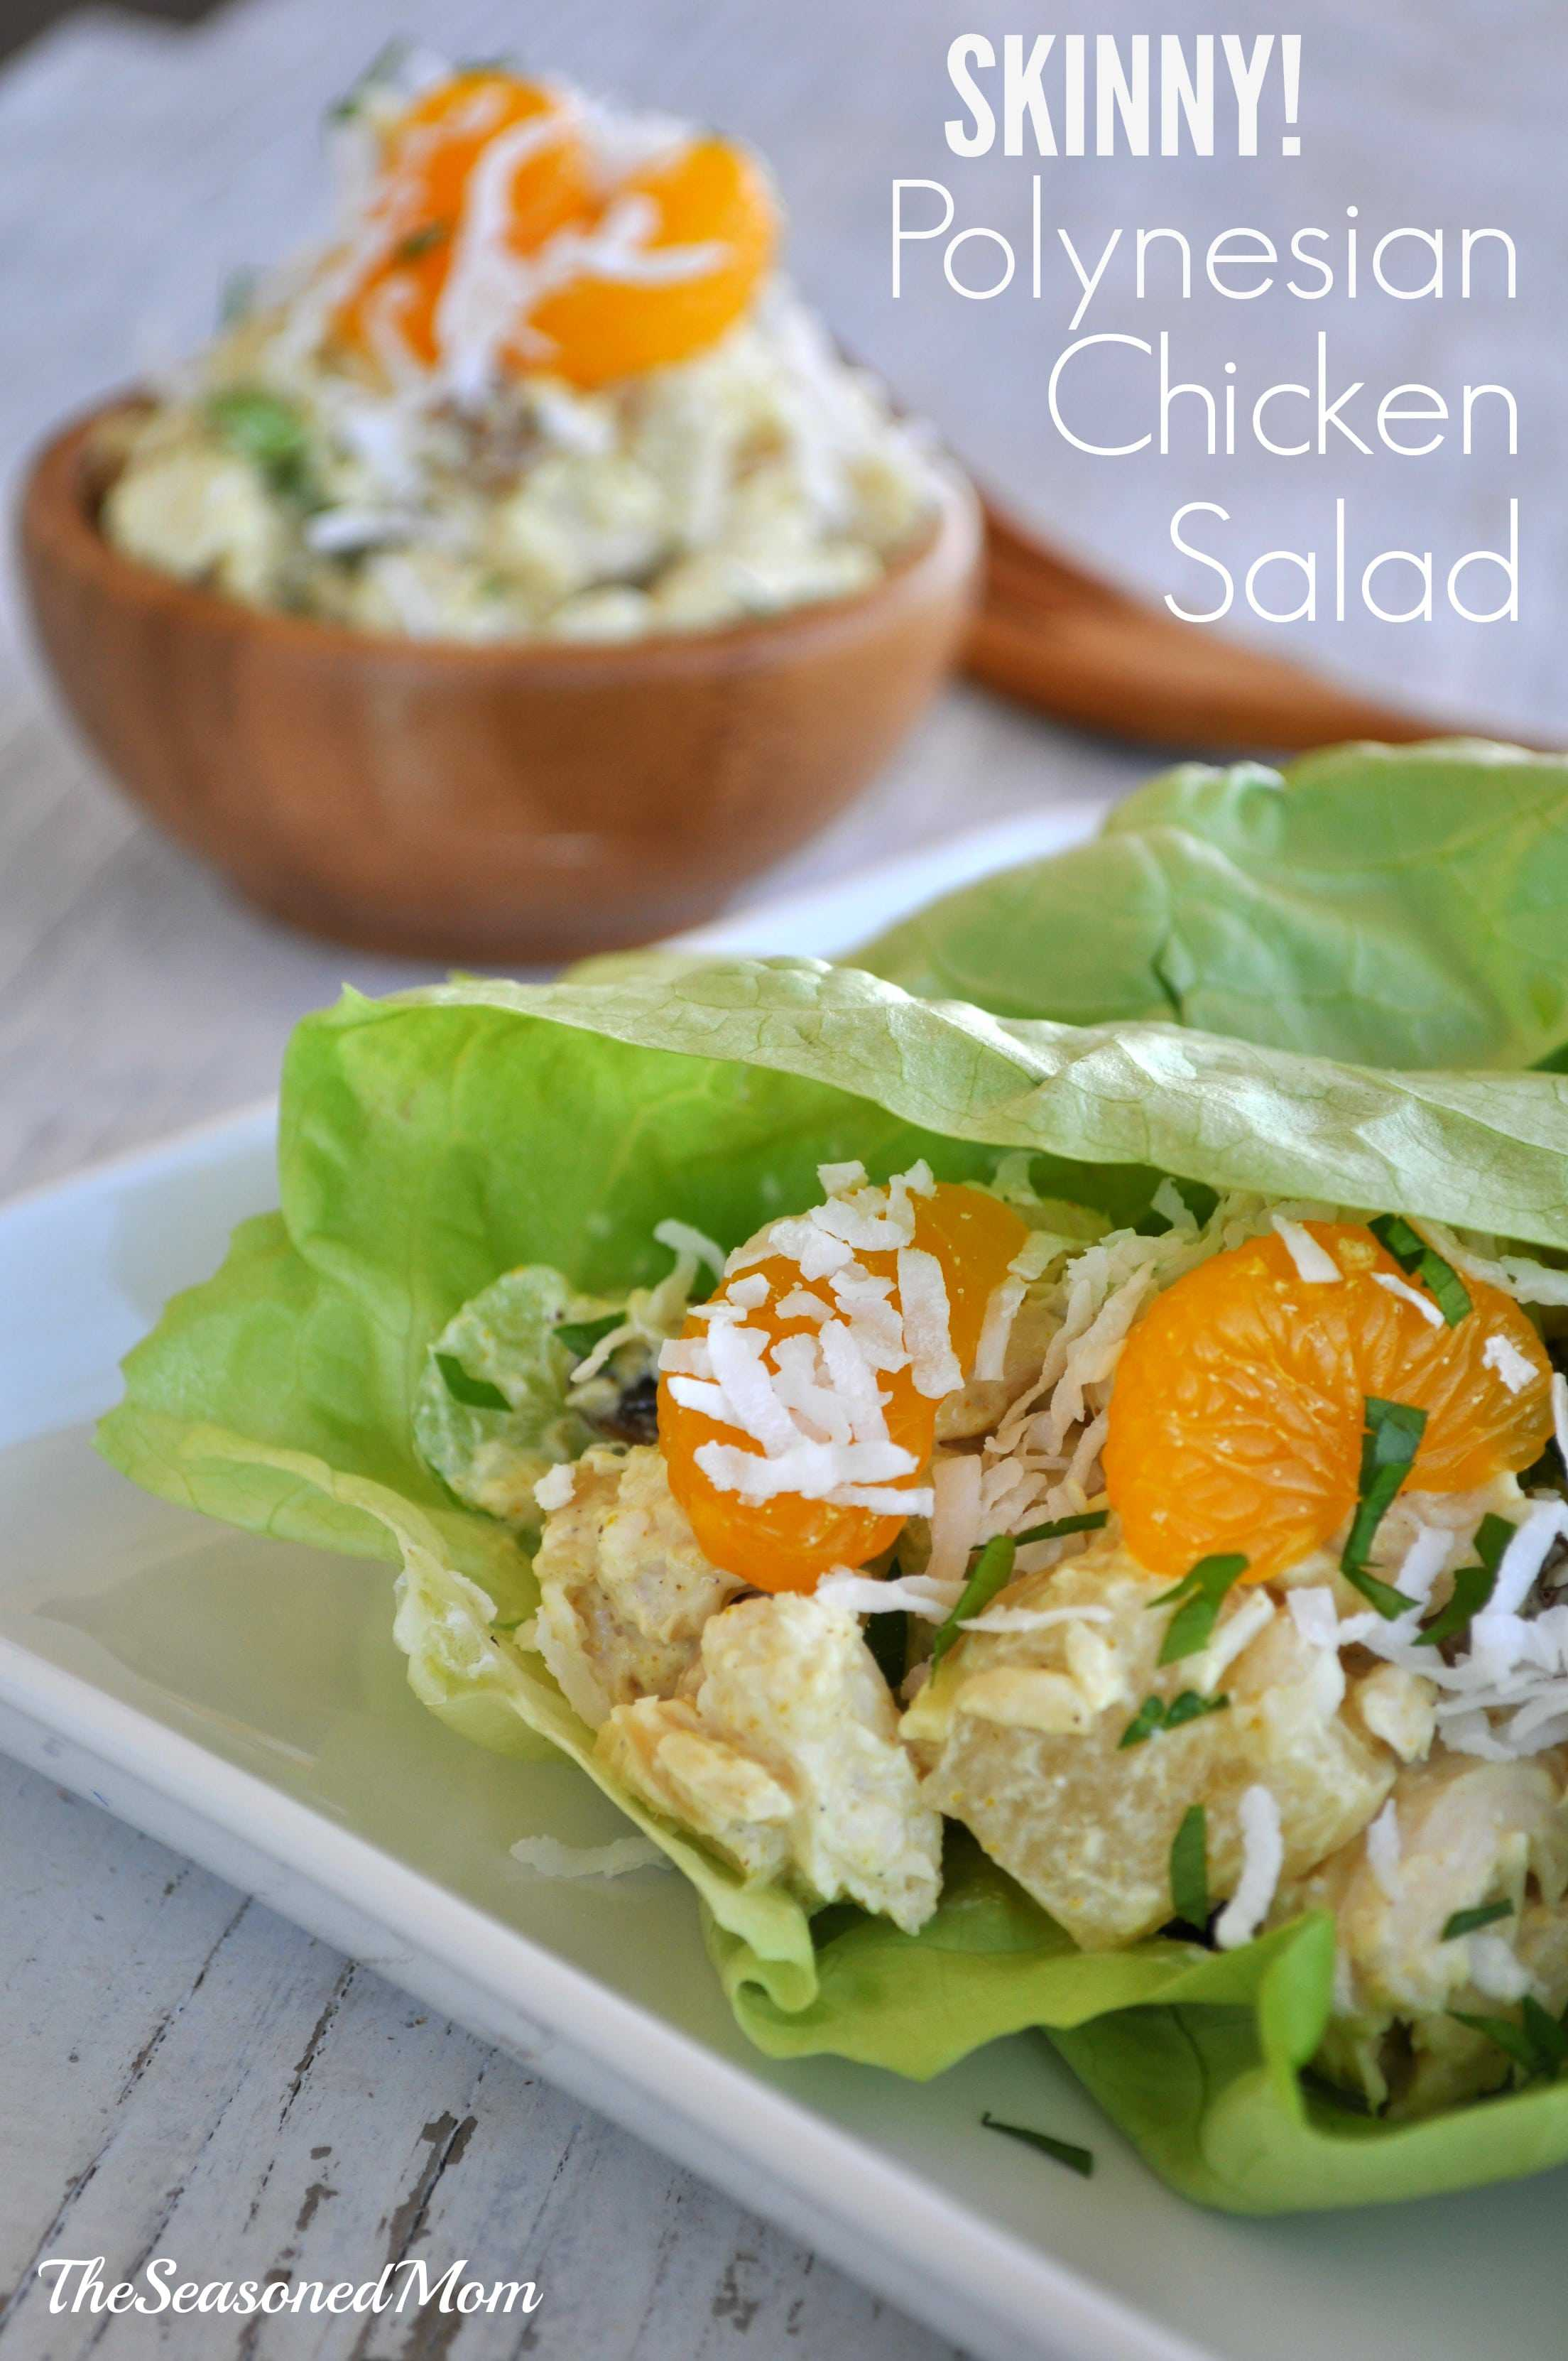 Skinny Polynesian Chicken Salad - The Seasoned Mom